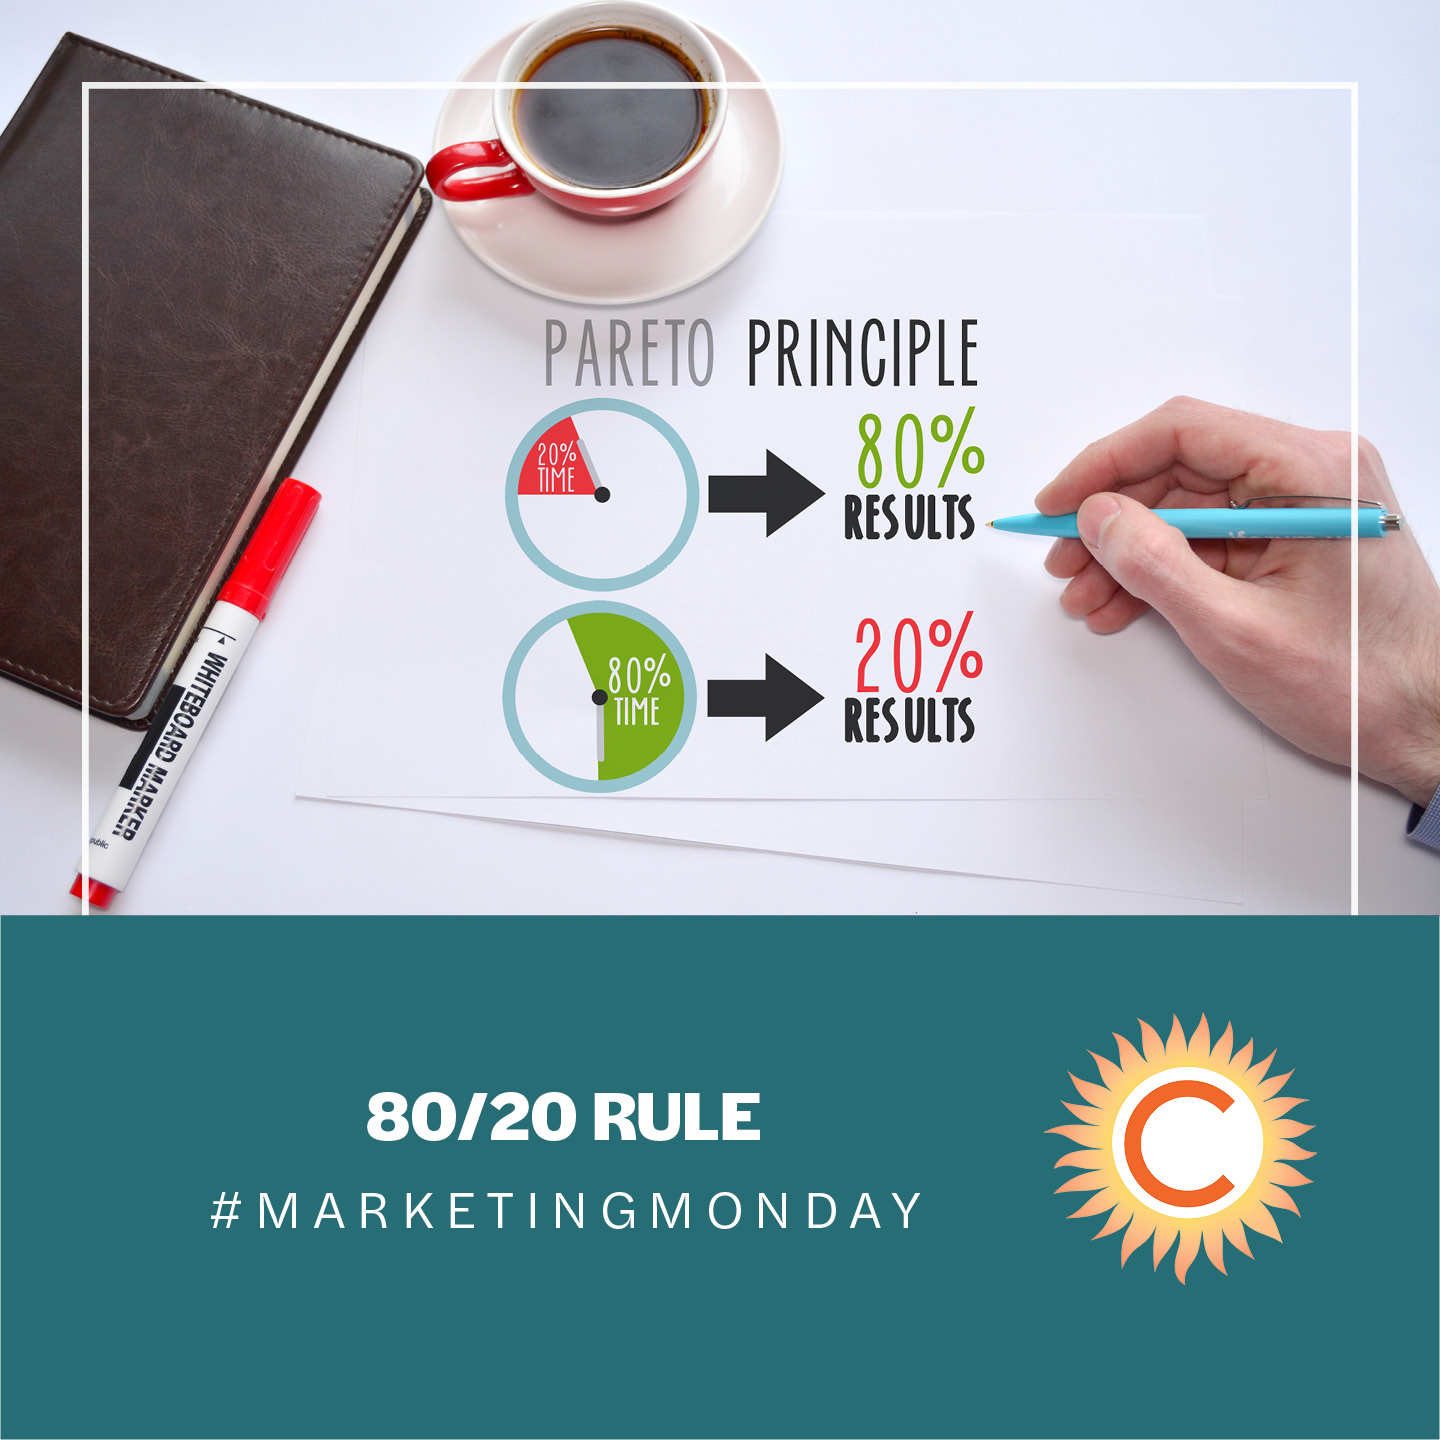 Improving Marketing Efficiency with the 80/20 Rule